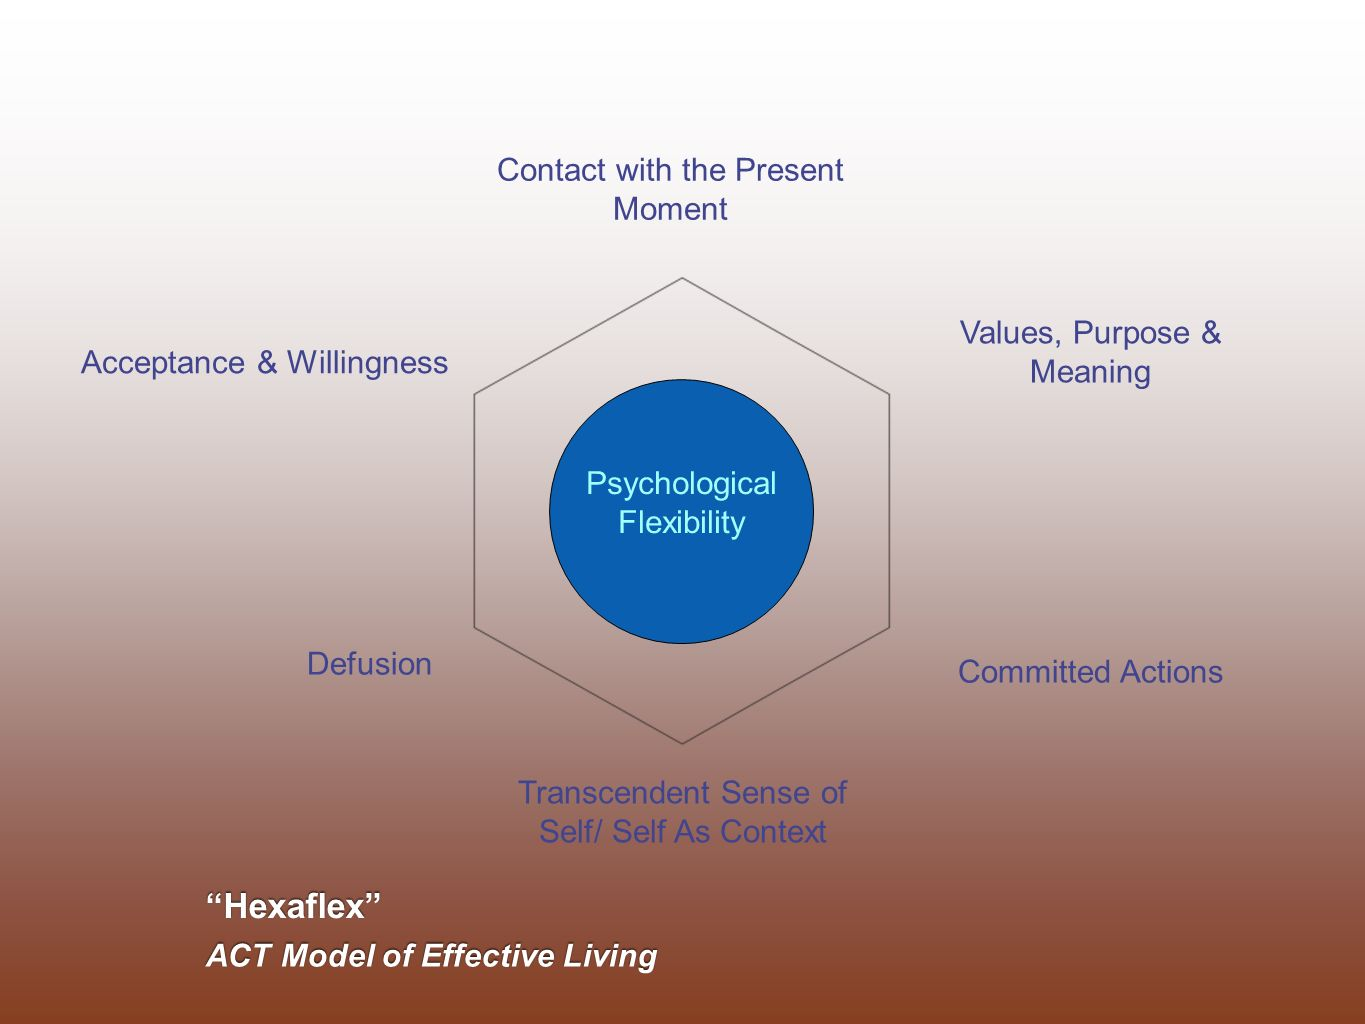 Hexaflex Contact with the Present Moment Values, Purpose & Meaning